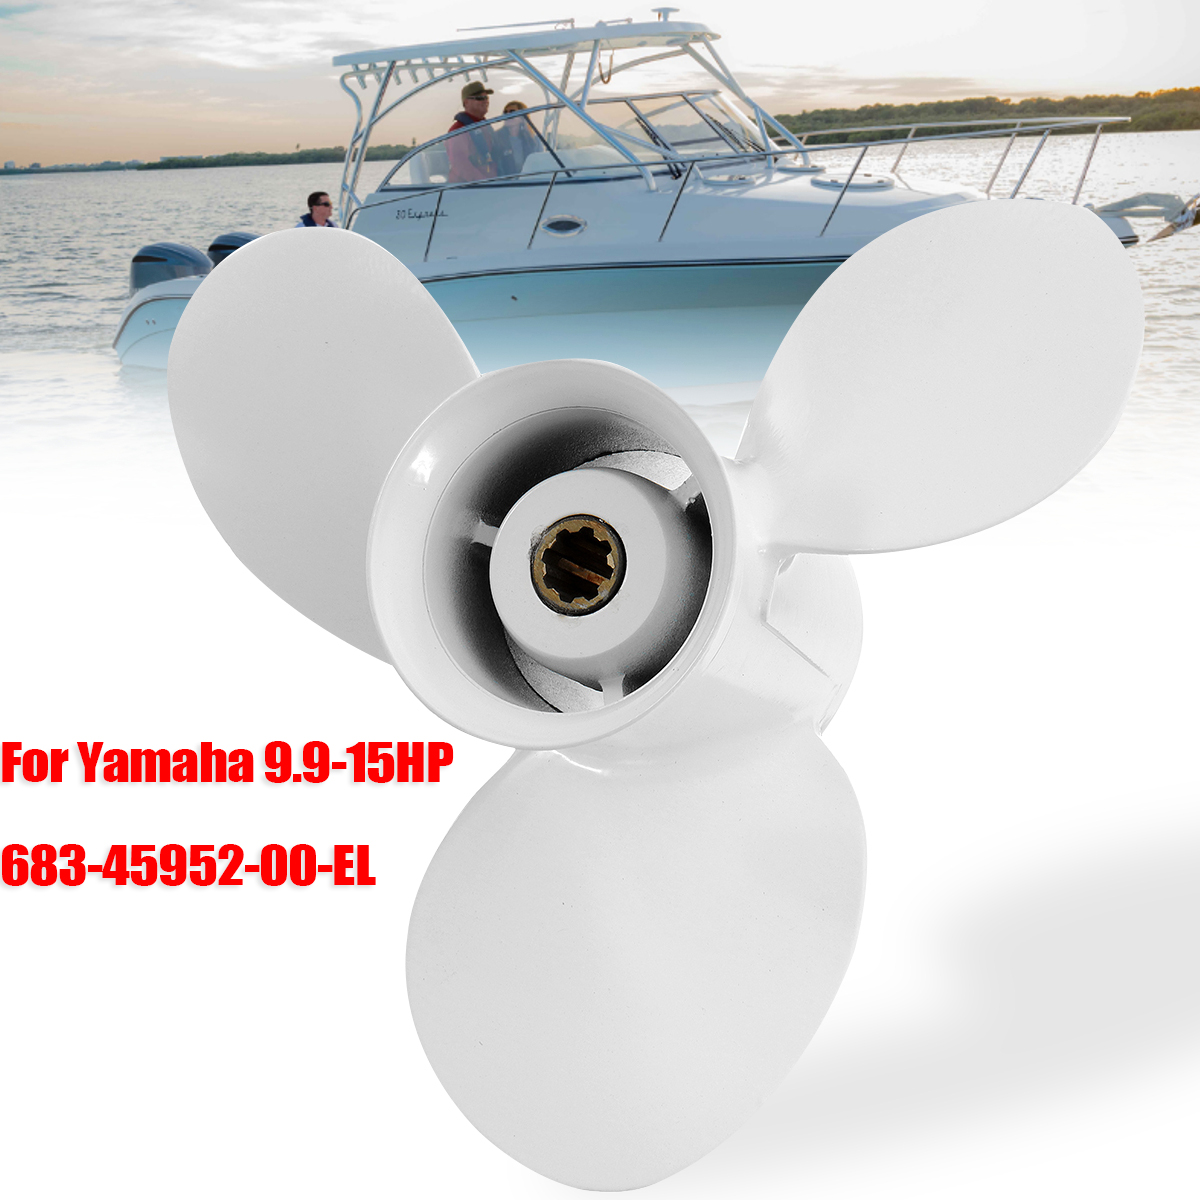 United 683-45952-00-el 9 1/4 X 9 3/4 Aluminum Alloy Boat Outboard Propeller For Yamaha 9.9-15hp R Rotation 3 Blades 8 Spline Tooths Boat Parts & Accessories Atv,rv,boat & Other Vehicle